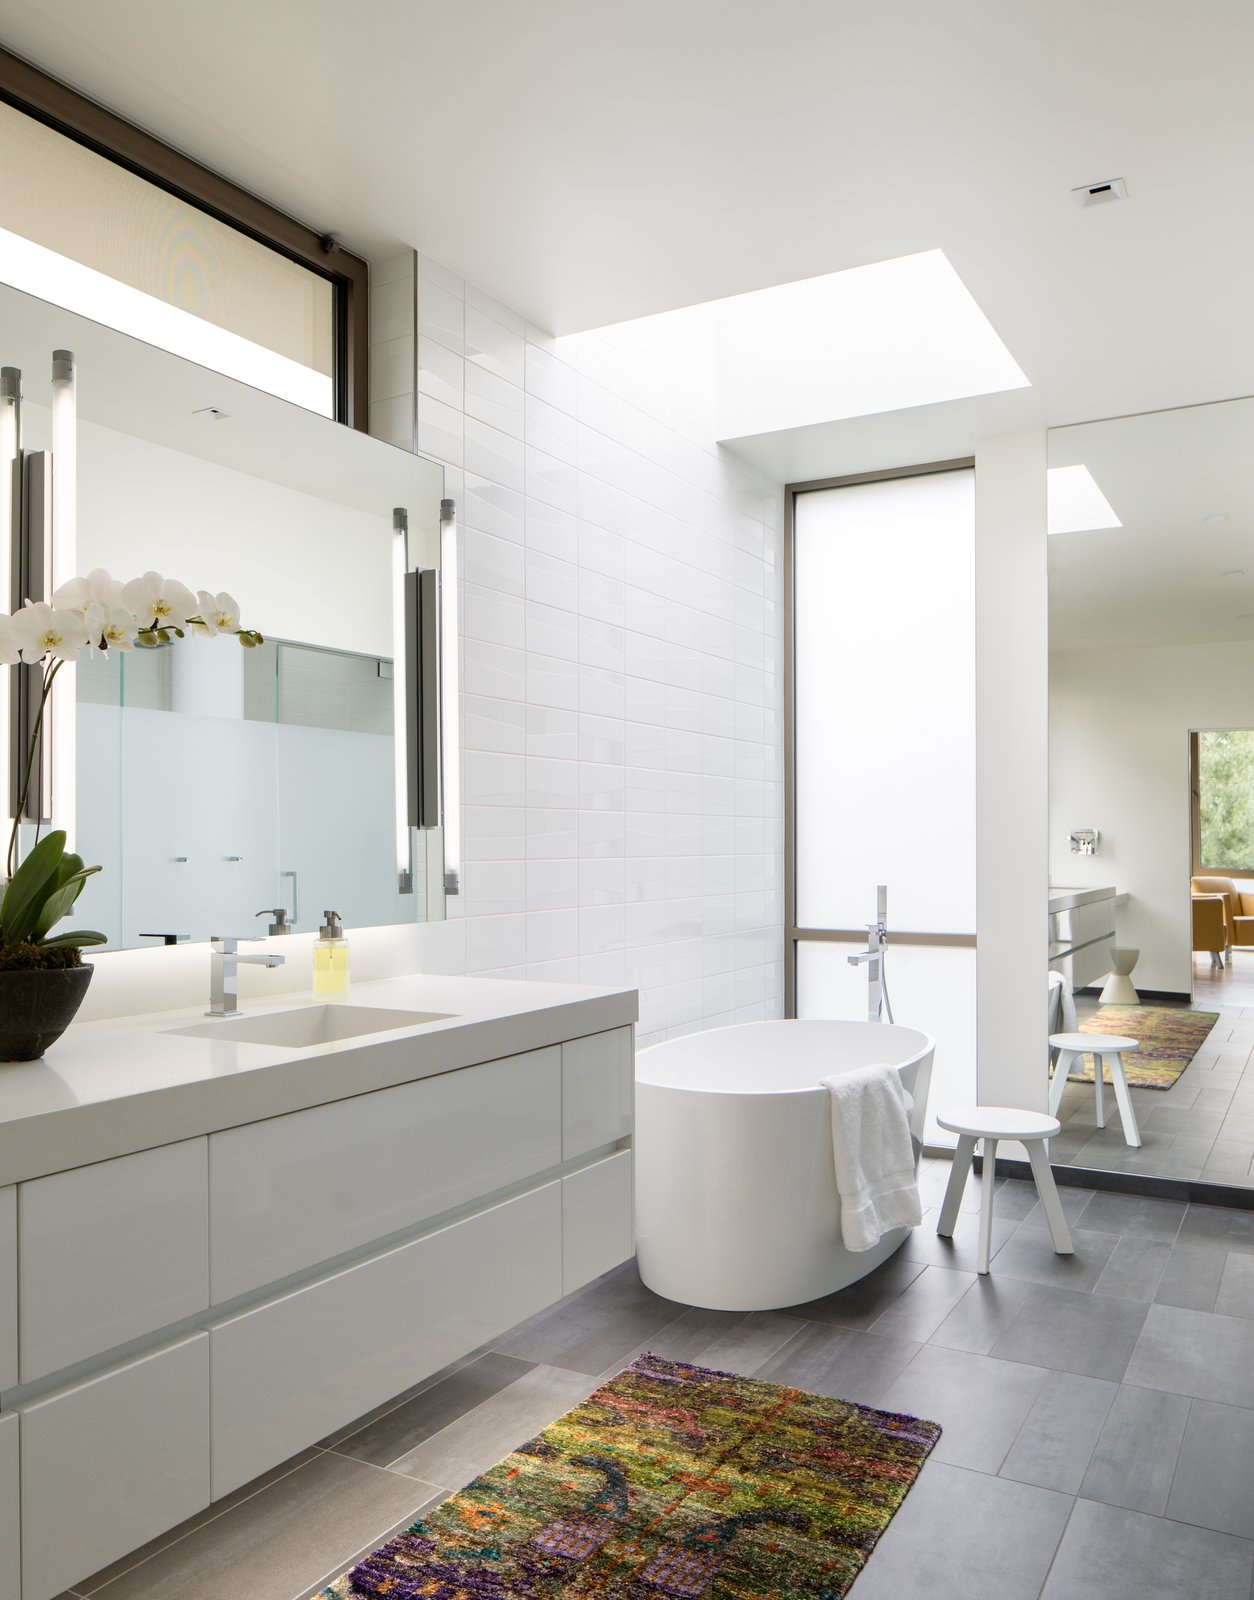 Master Bathroom Tagged: Bath Room, Engineered Quartz Counter, Porcelain Tile Floor, Undermount Sink, Freestanding Tub, Ceiling Lighting, Accent Lighting, Enclosed Shower, Porcelain Tile Wall, Recessed Lighting, and One Piece Toilet.  the Duncan Residence by Tom Gallagher